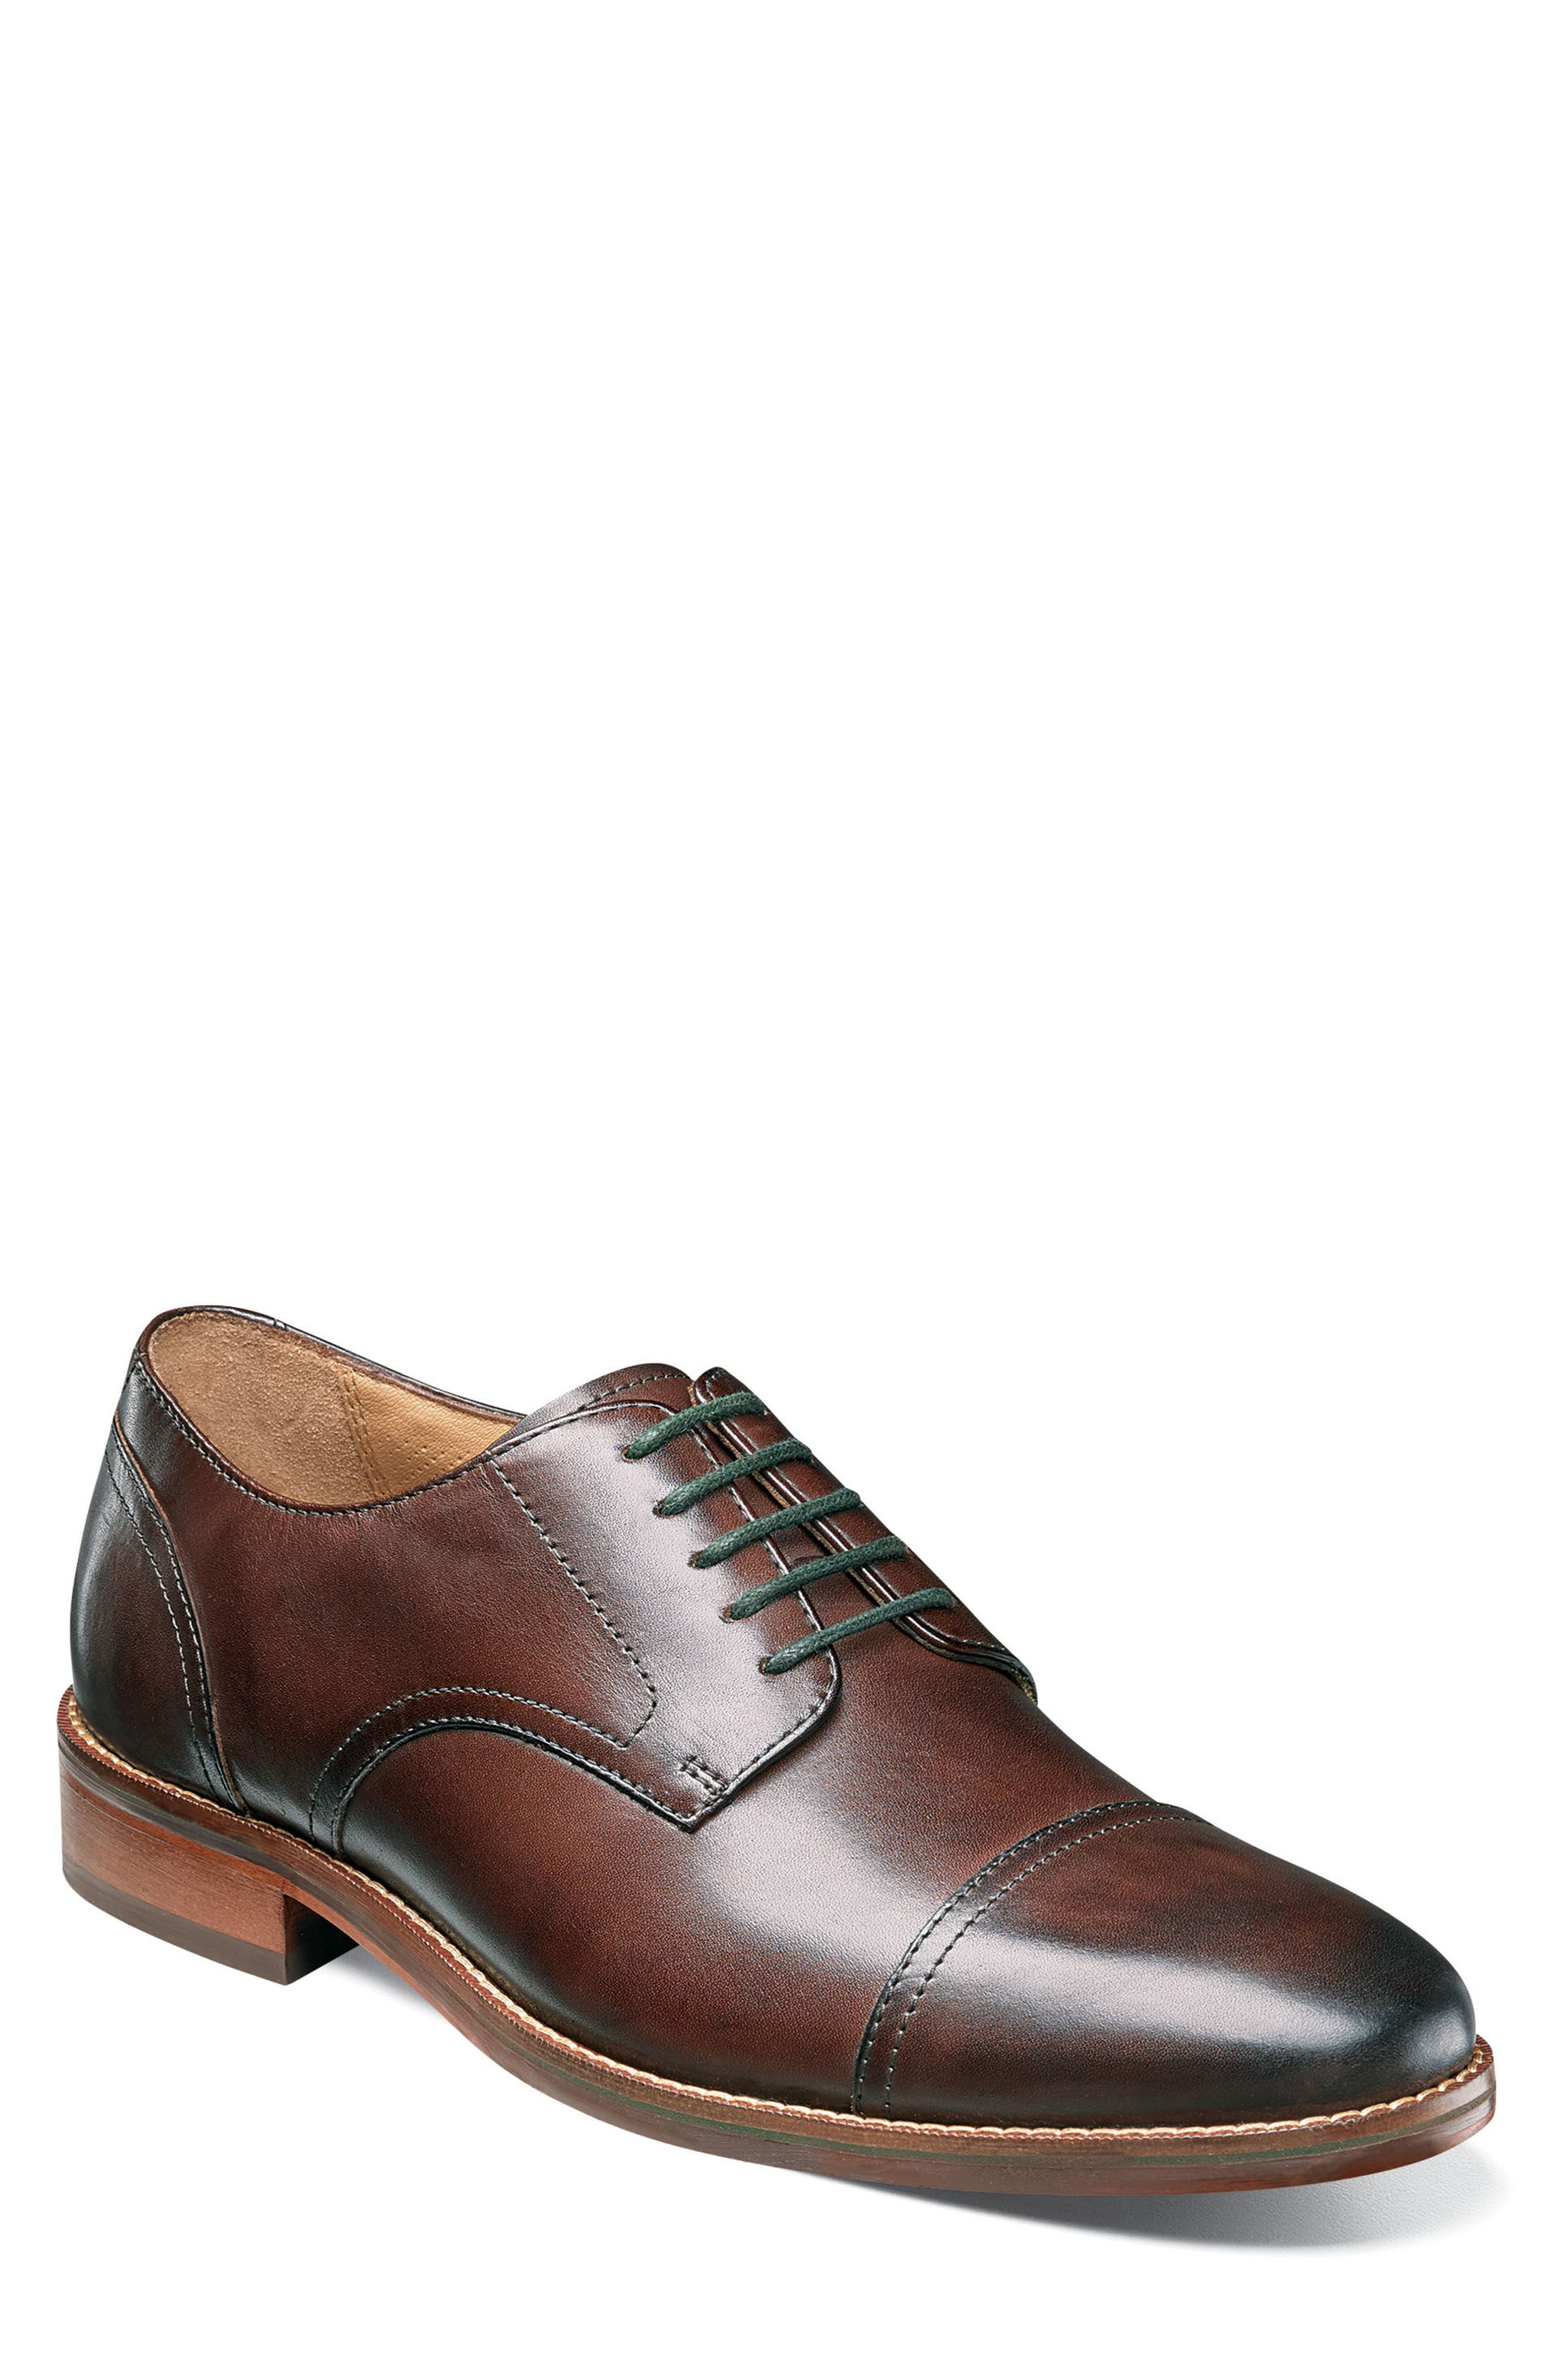 Salerno Cap Toe Derby,                         Main,                         color, Brown Leather